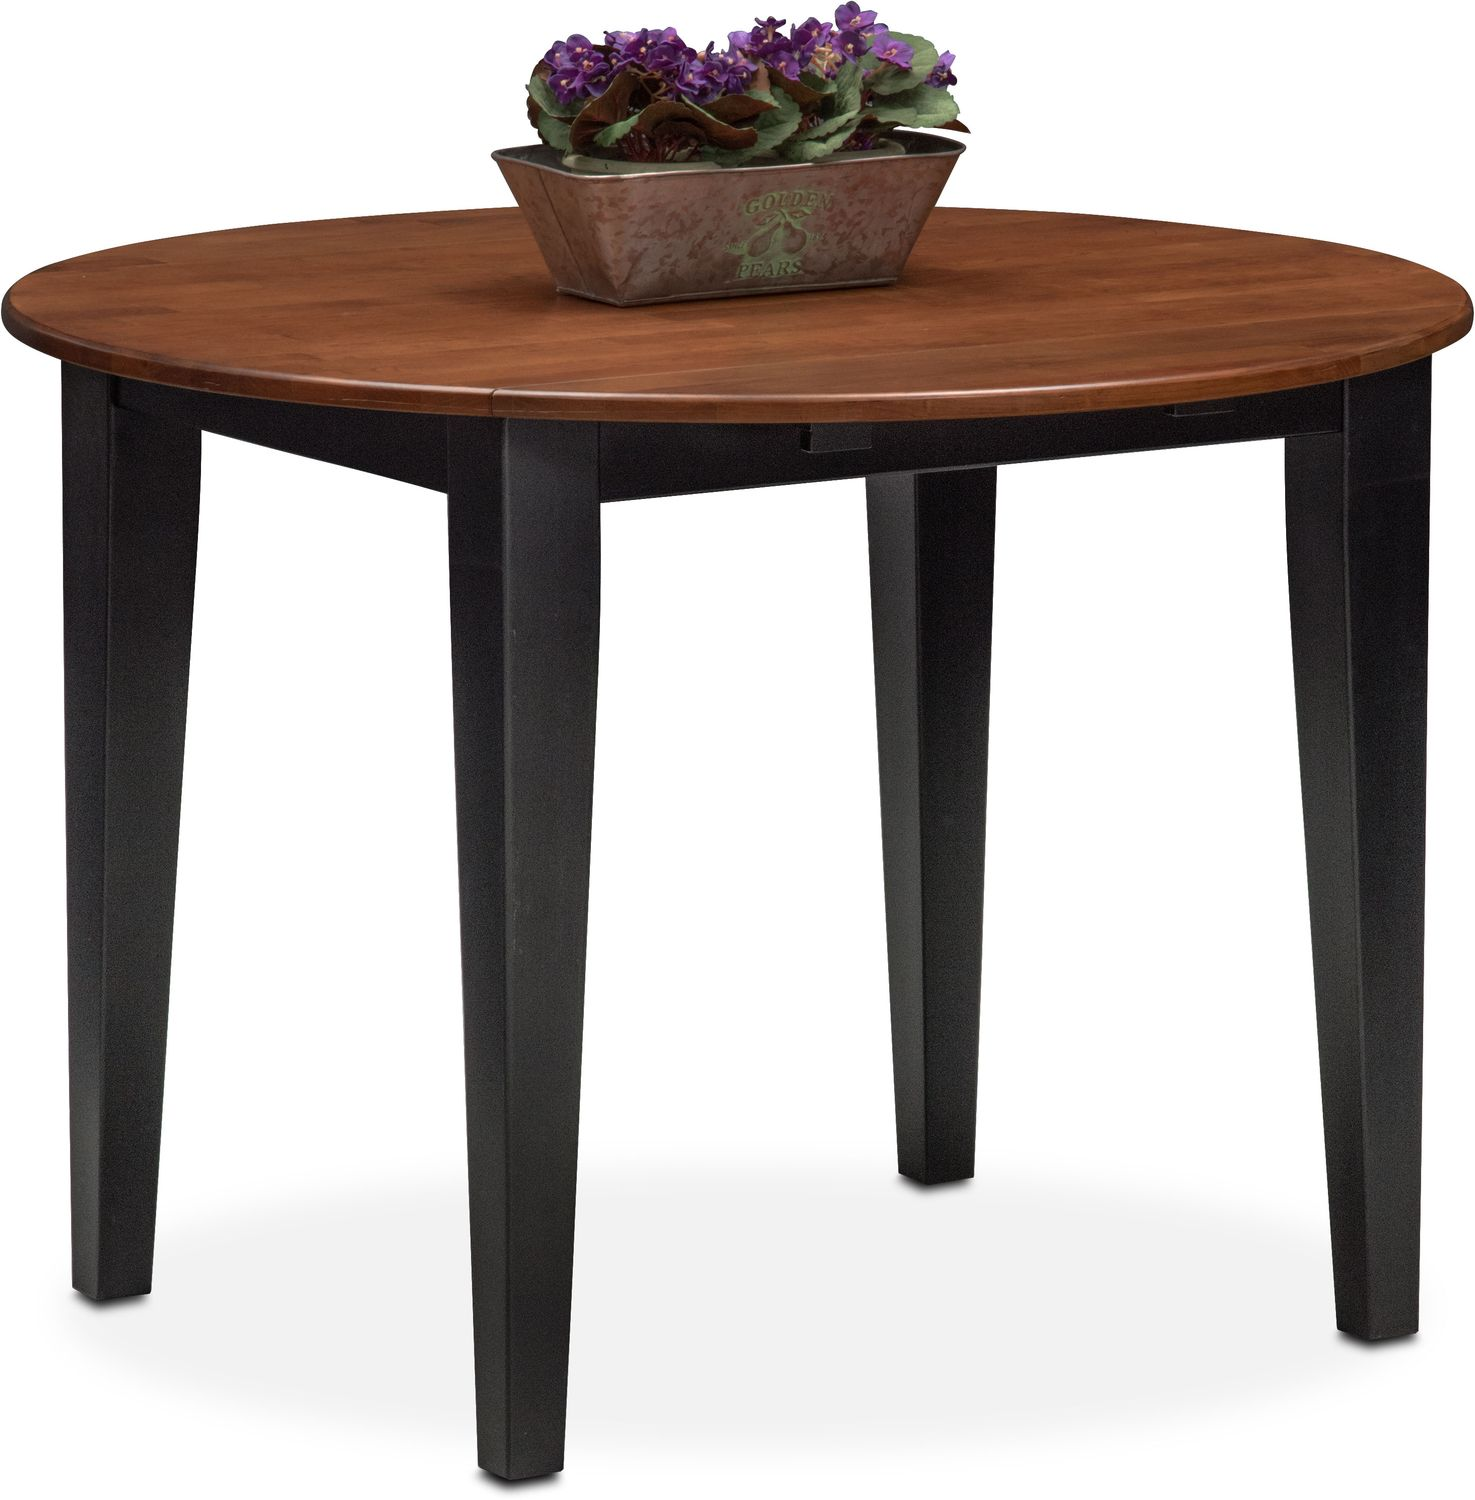 nantucket drop leaf table black and cherry american signature furniture. Black Bedroom Furniture Sets. Home Design Ideas